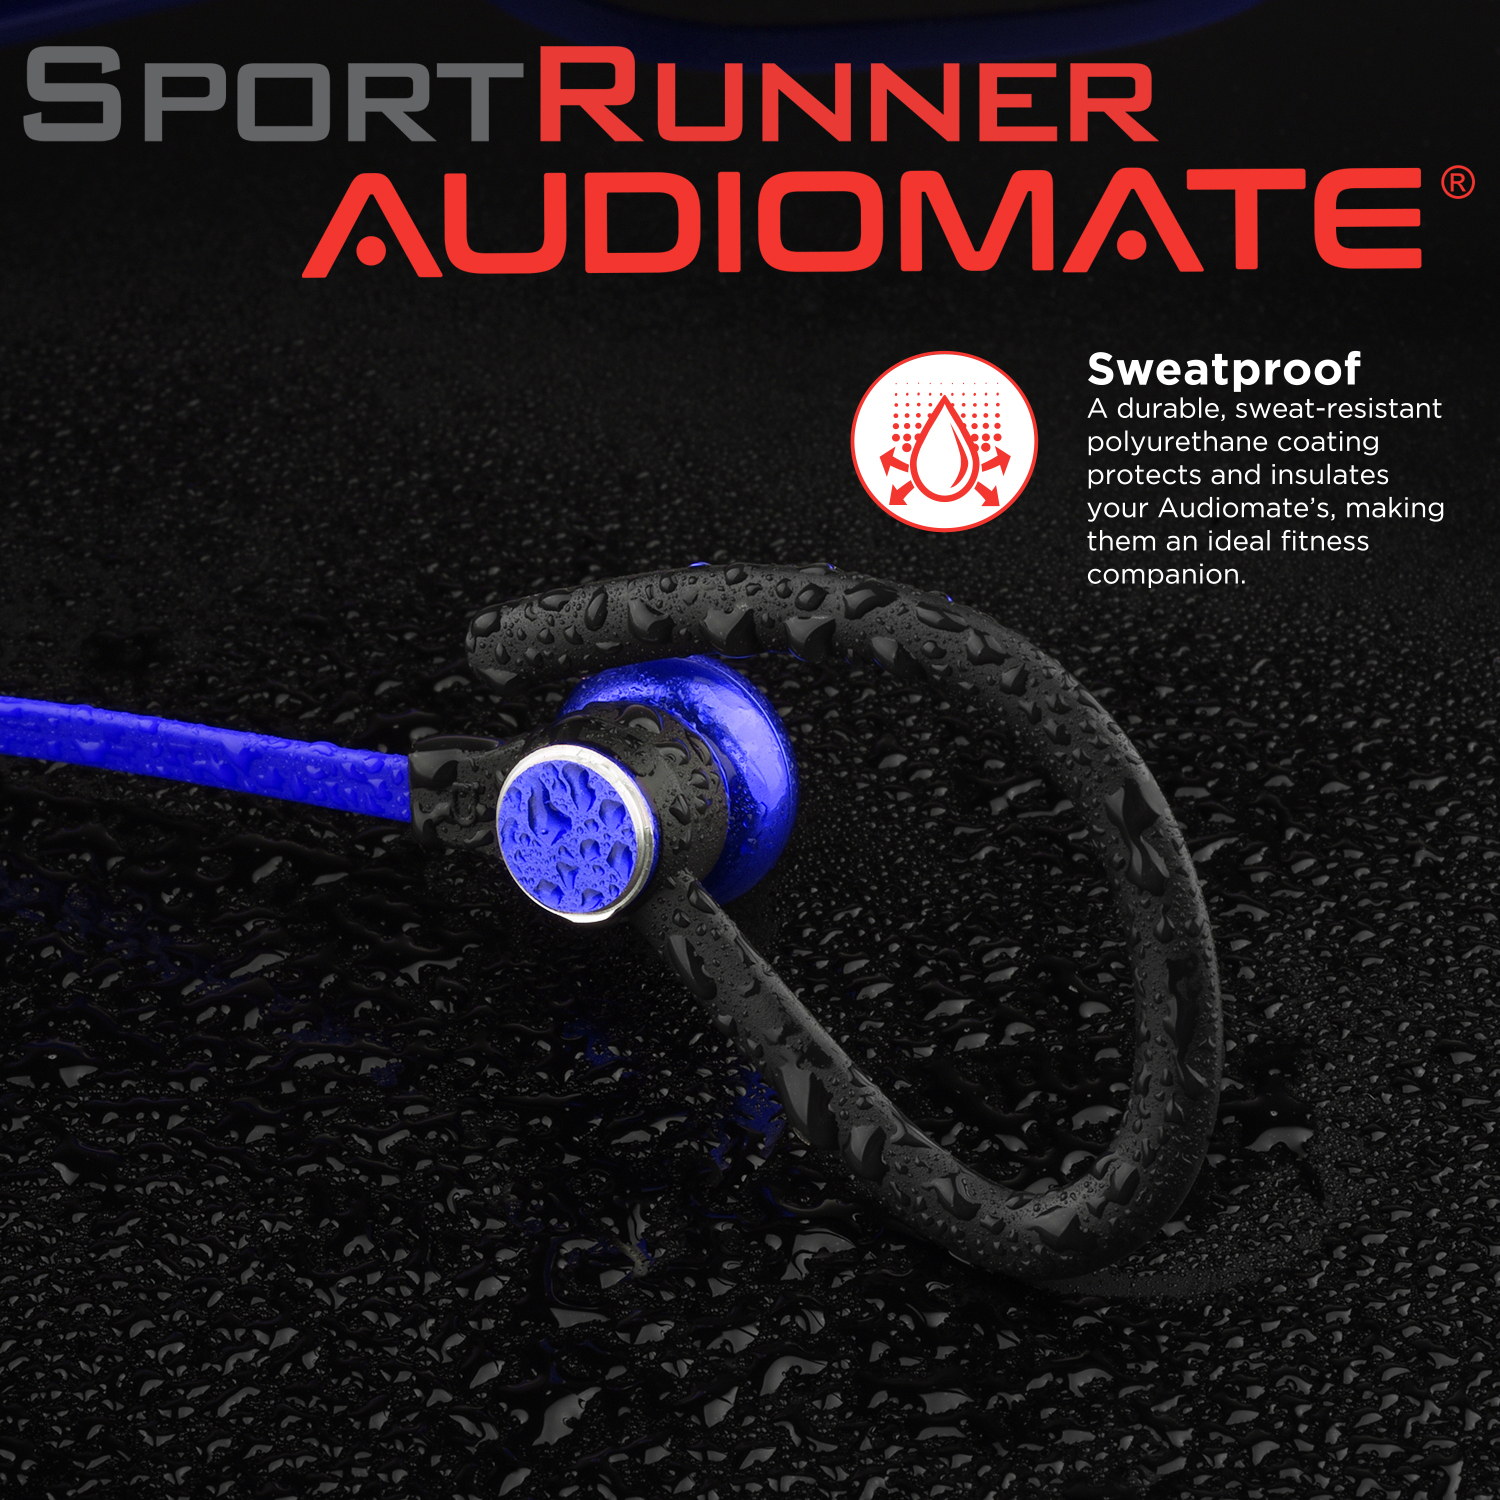 125e65dae57 audiomate s12 slim sweatproof wireless bluetooth 4.1 headphones sports  headset, lightweight hd stereo earbuds with magnetic connection and  built-in mic ...